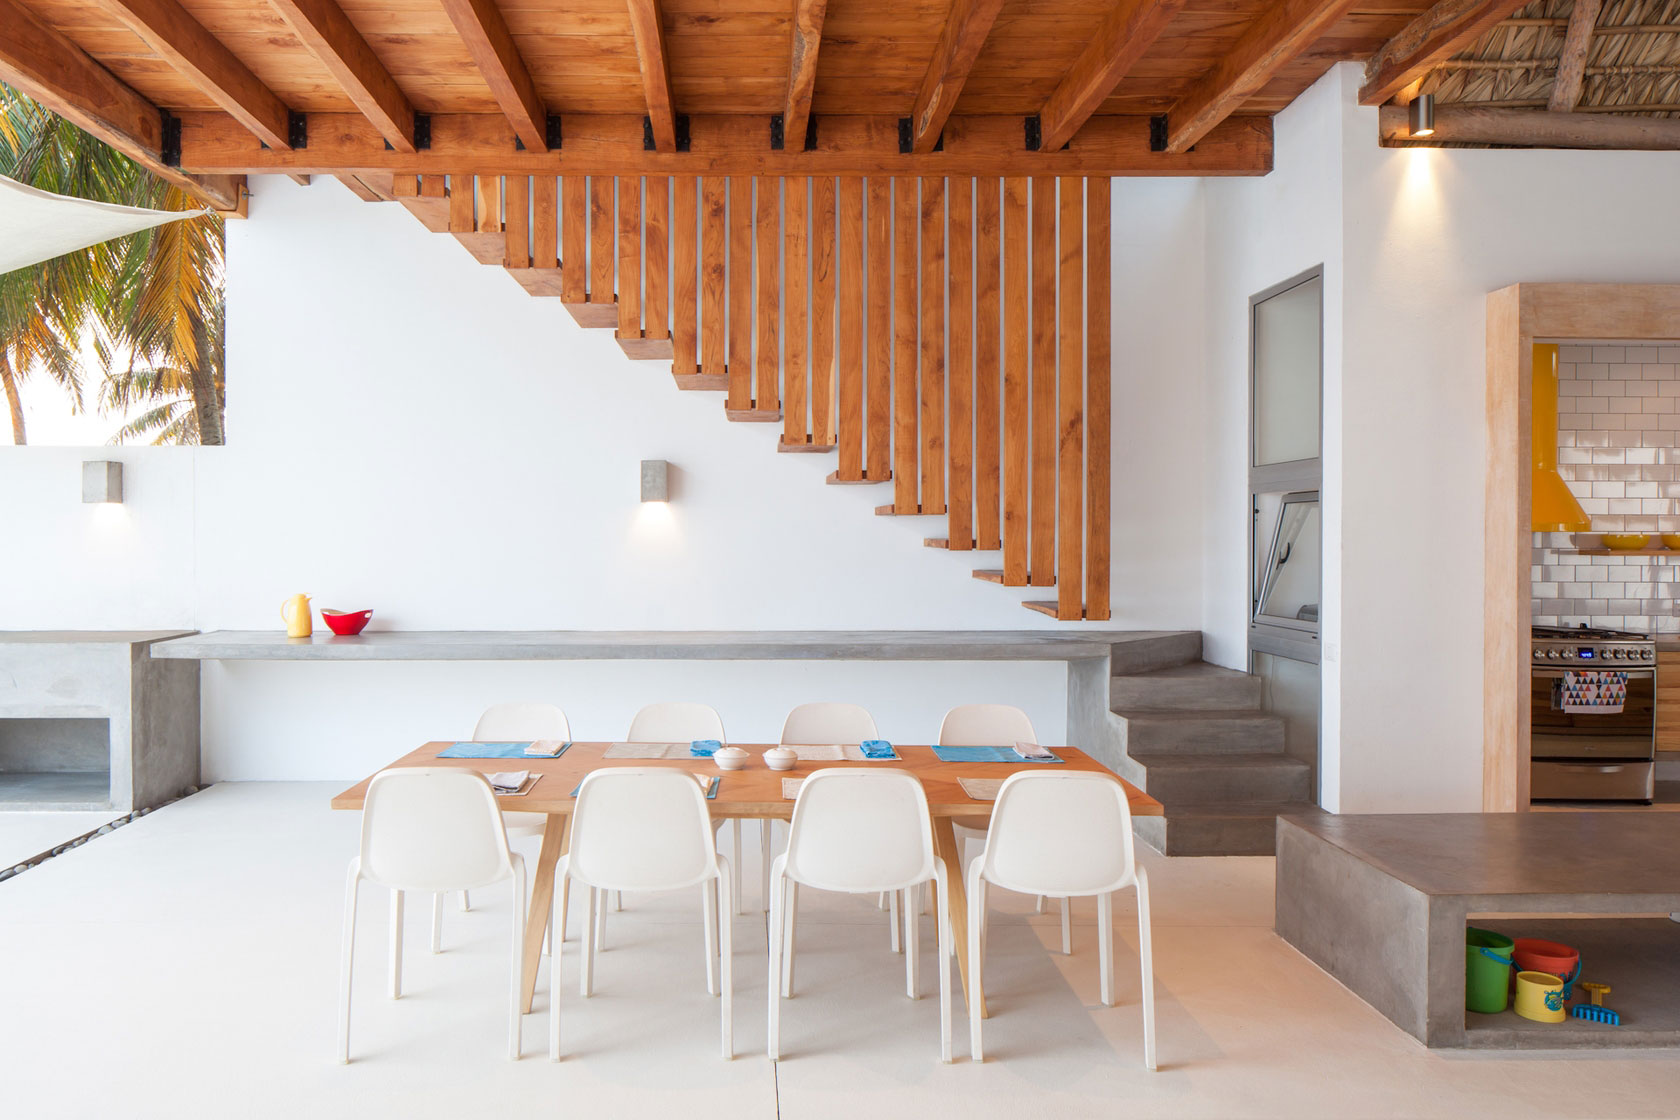 Dining Table, Stairs, Beach House in San Salvador, El Salvador